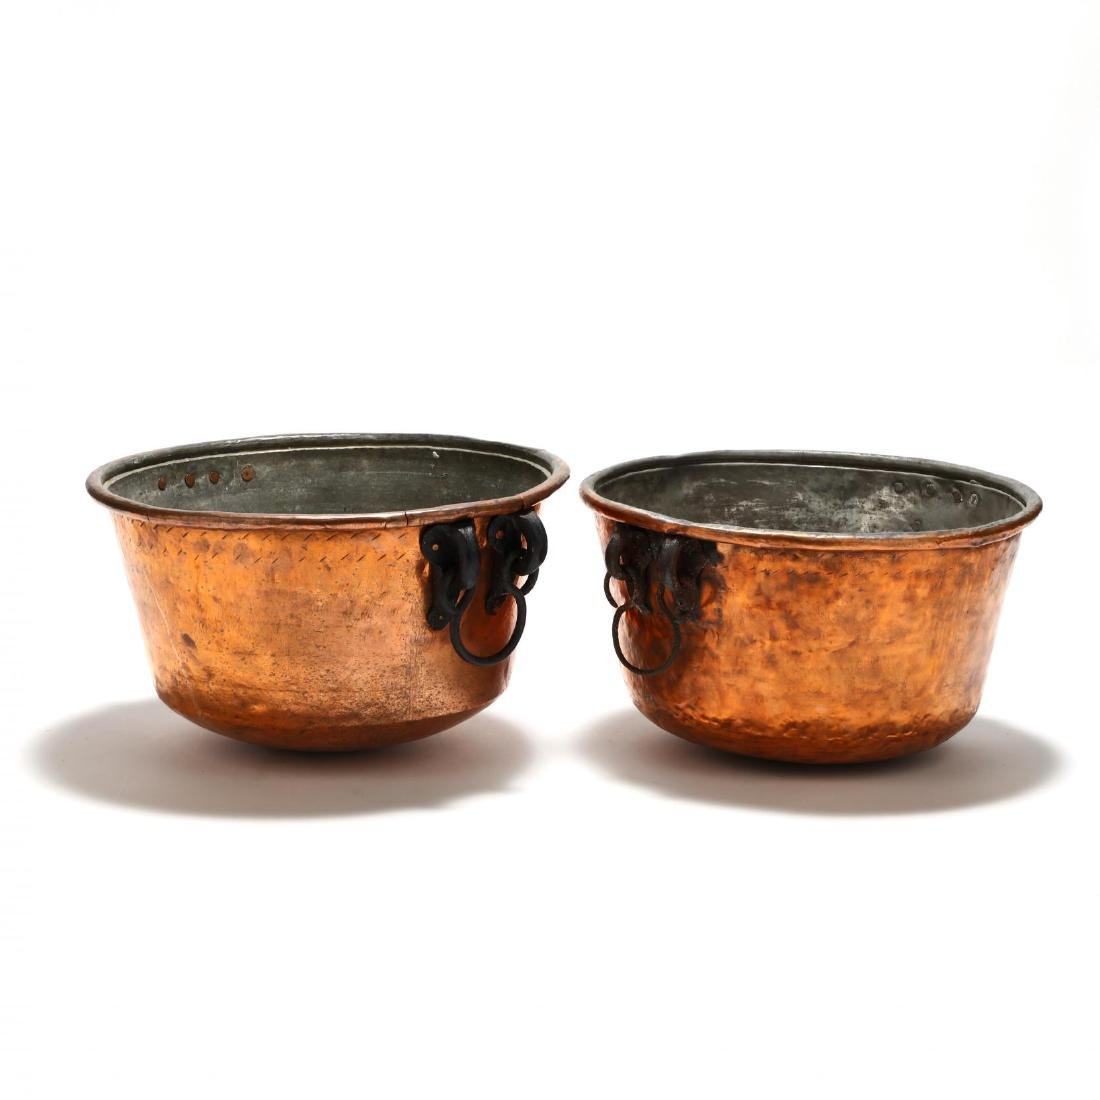 Two Large Hand-Hammered Copper Cauldrons - 3